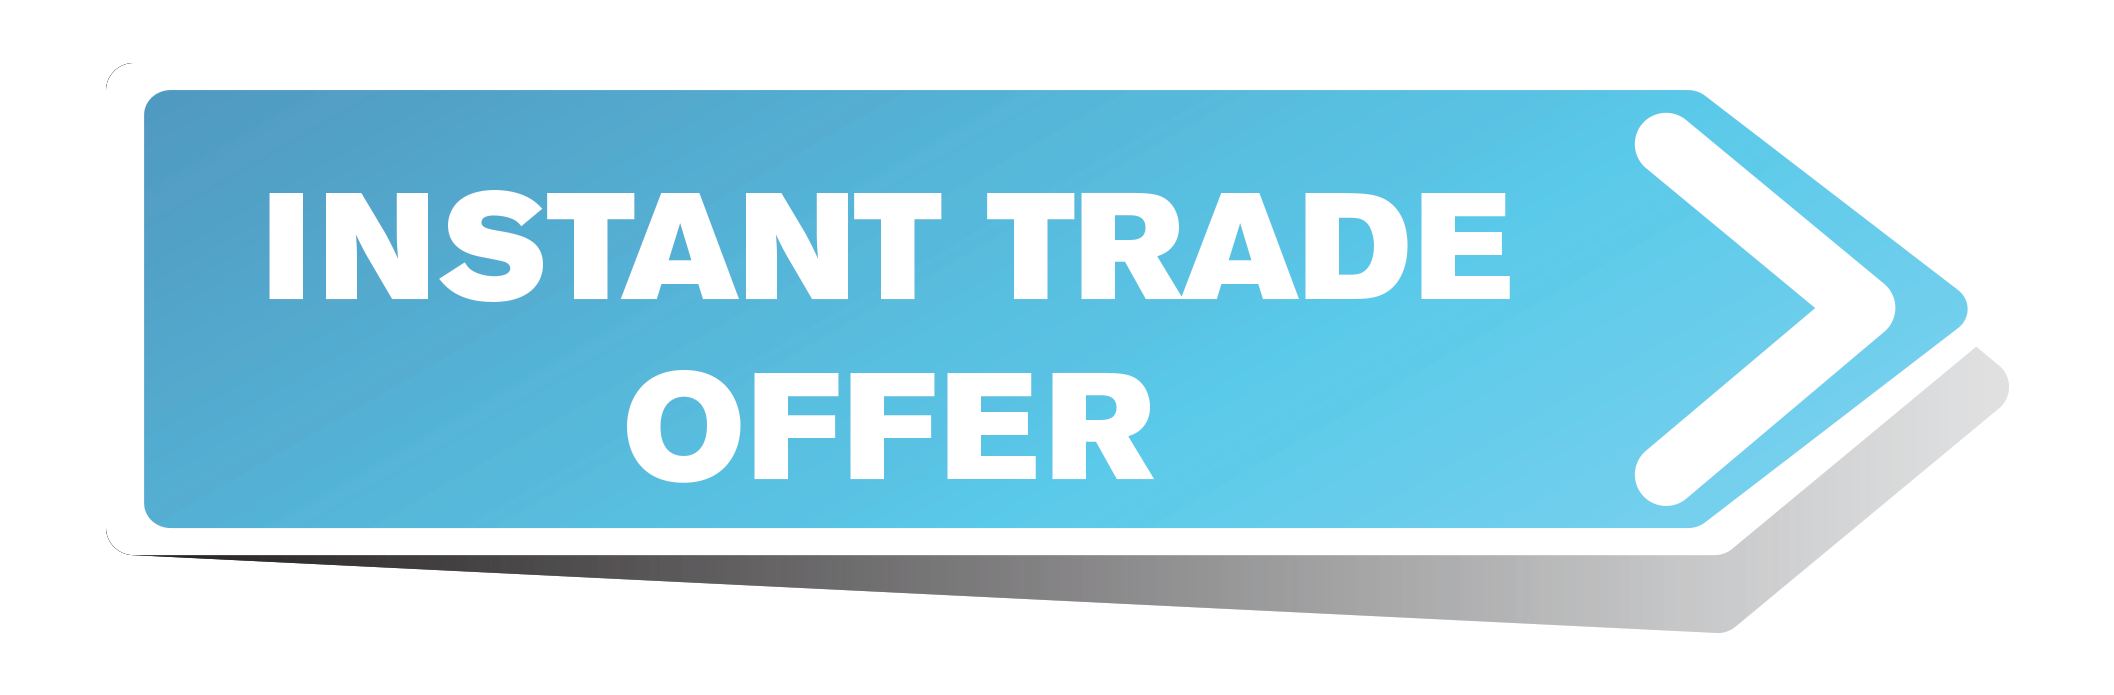 Instant Trade Offer